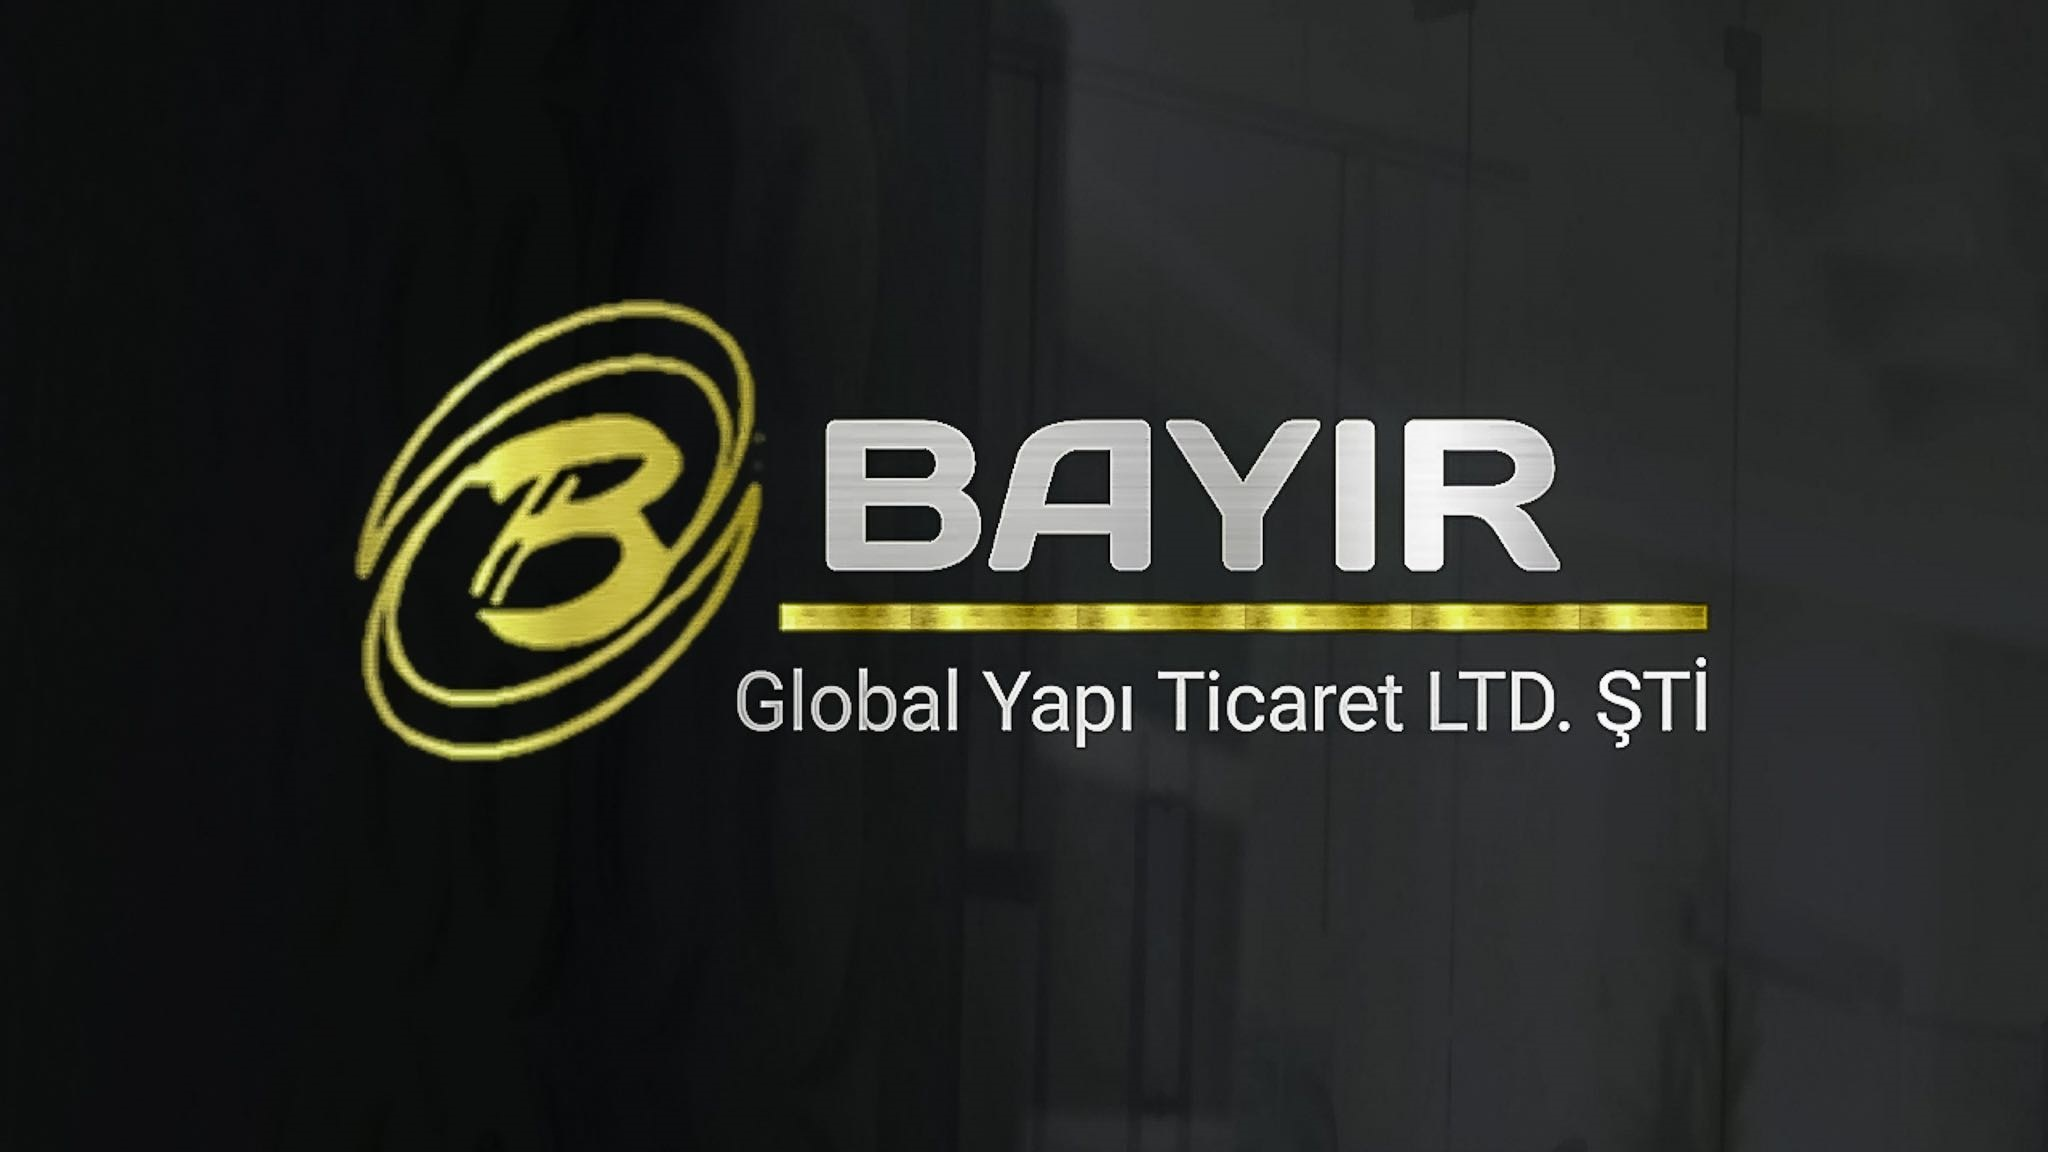 BAYIR GLOBAL YAPI TICARET LIMITED SIRKETI